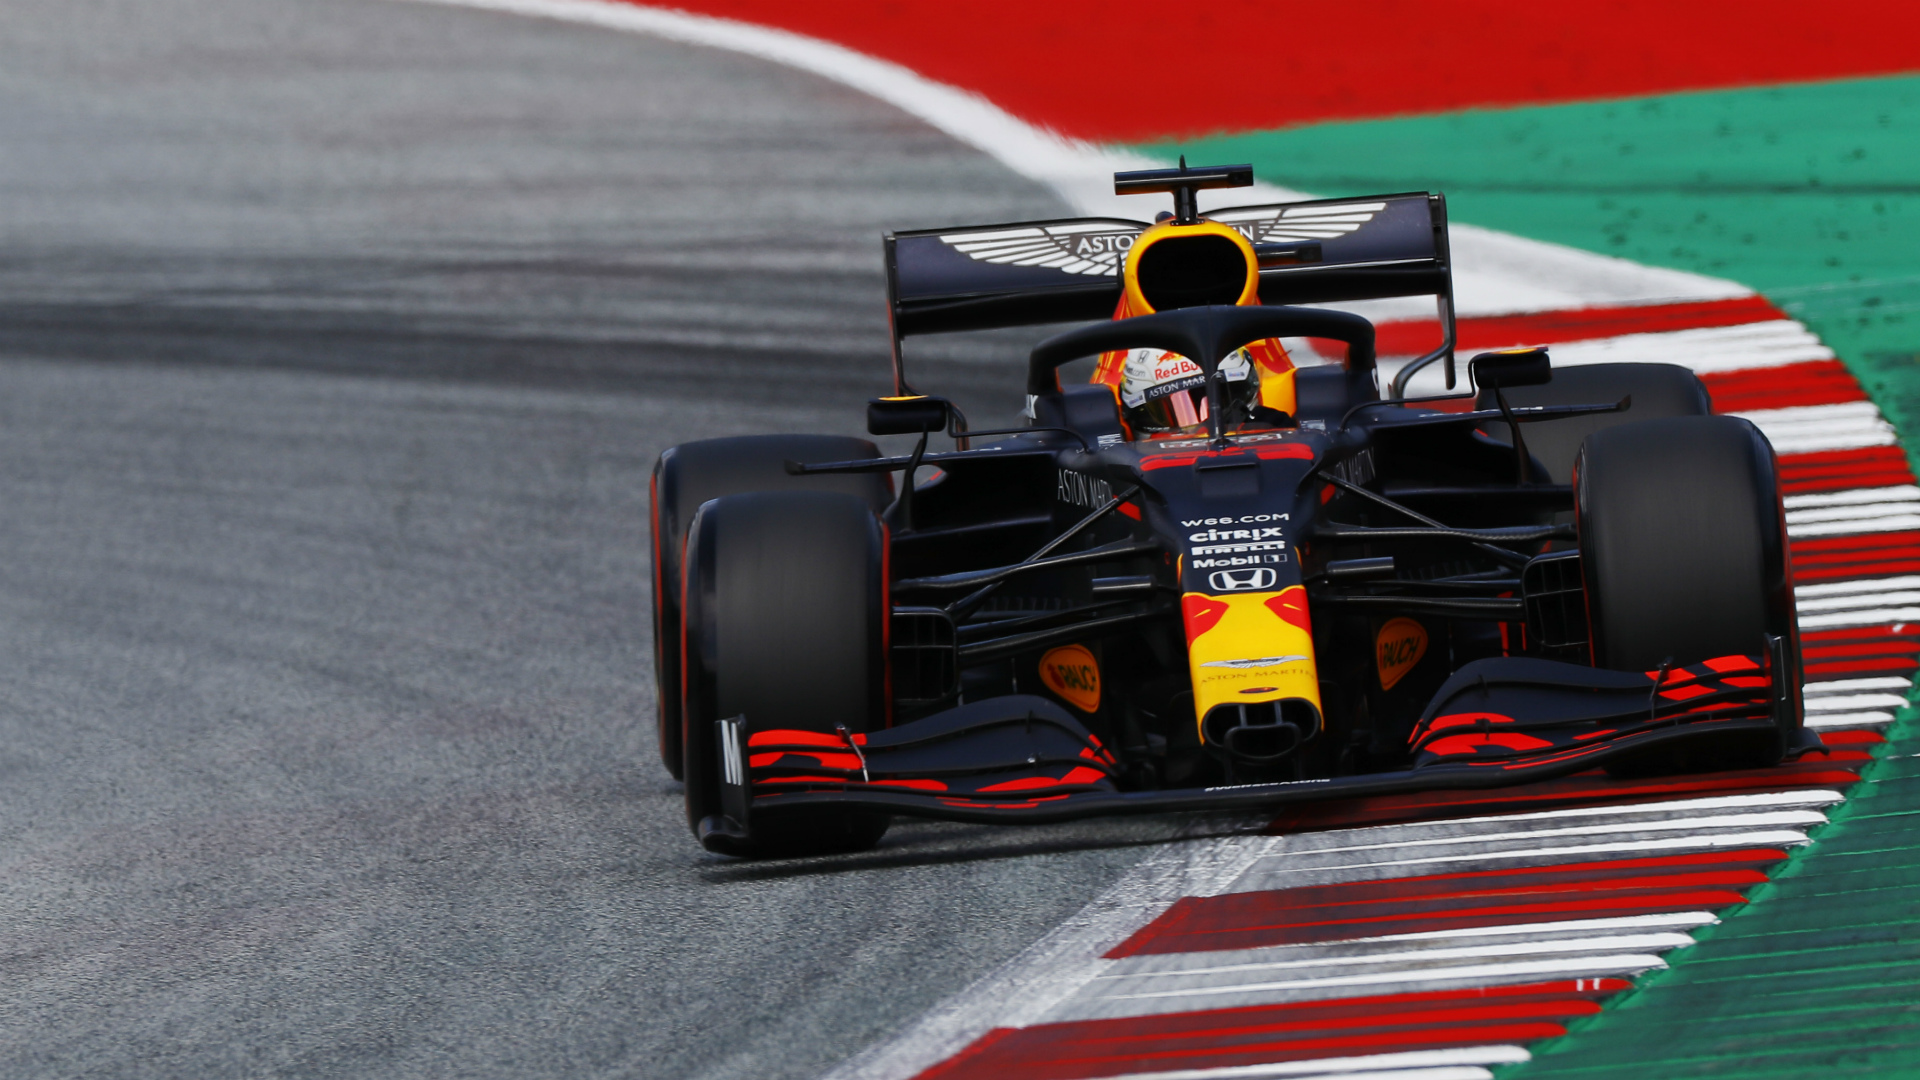 F1 2020: Starting grid and race preview for Austrian Grand Prix